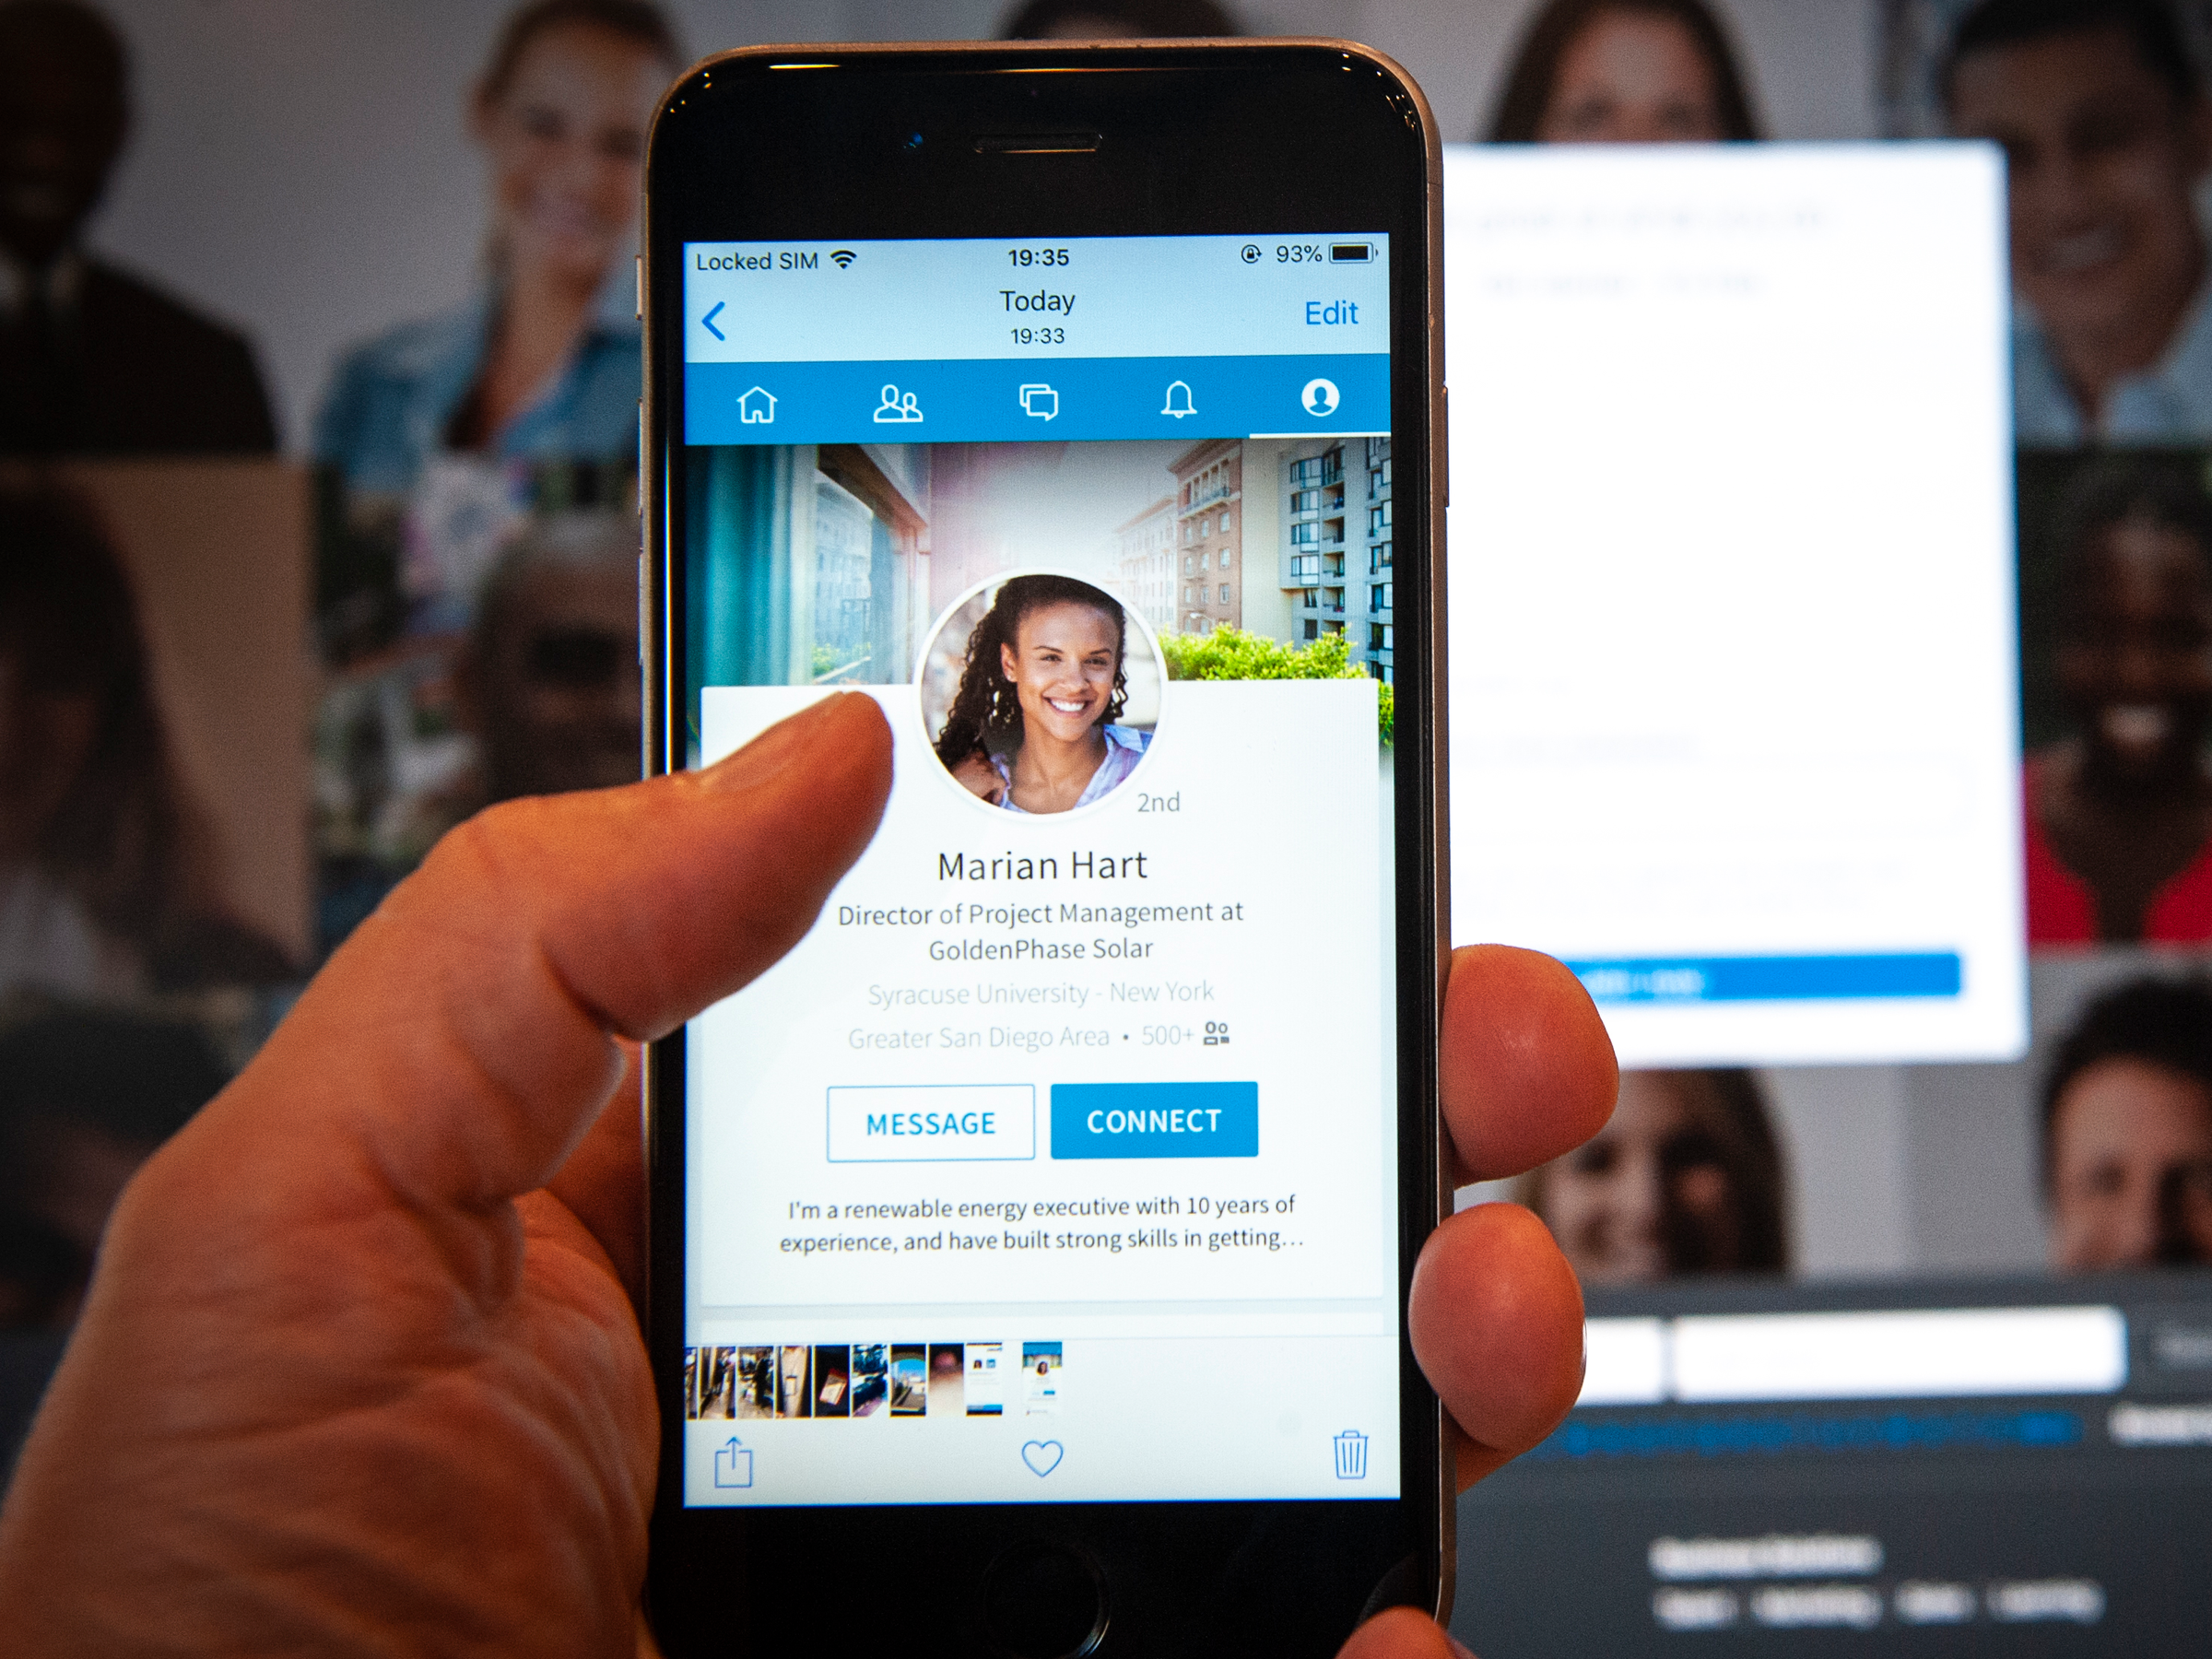 How to export/download your LinkedIn contacts